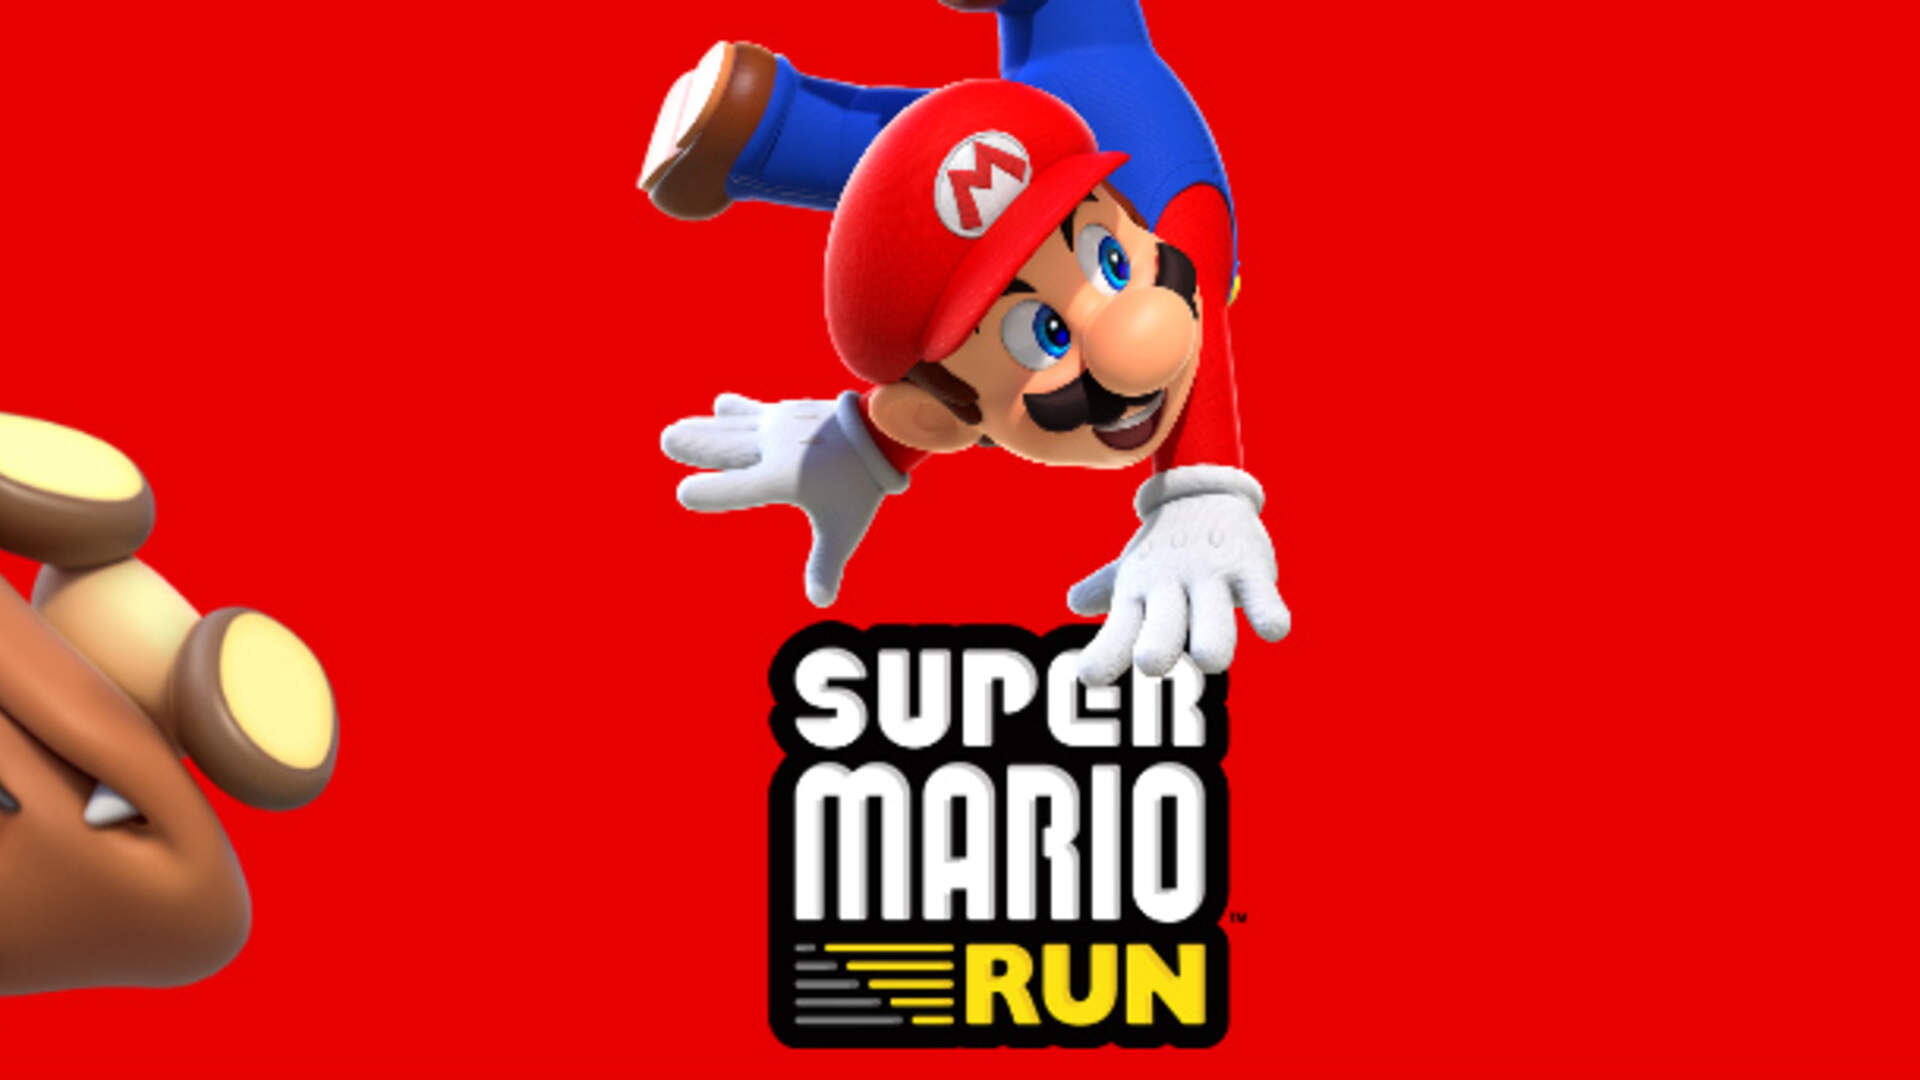 Super Mario Run: Tips and Hints for Mastering the Run